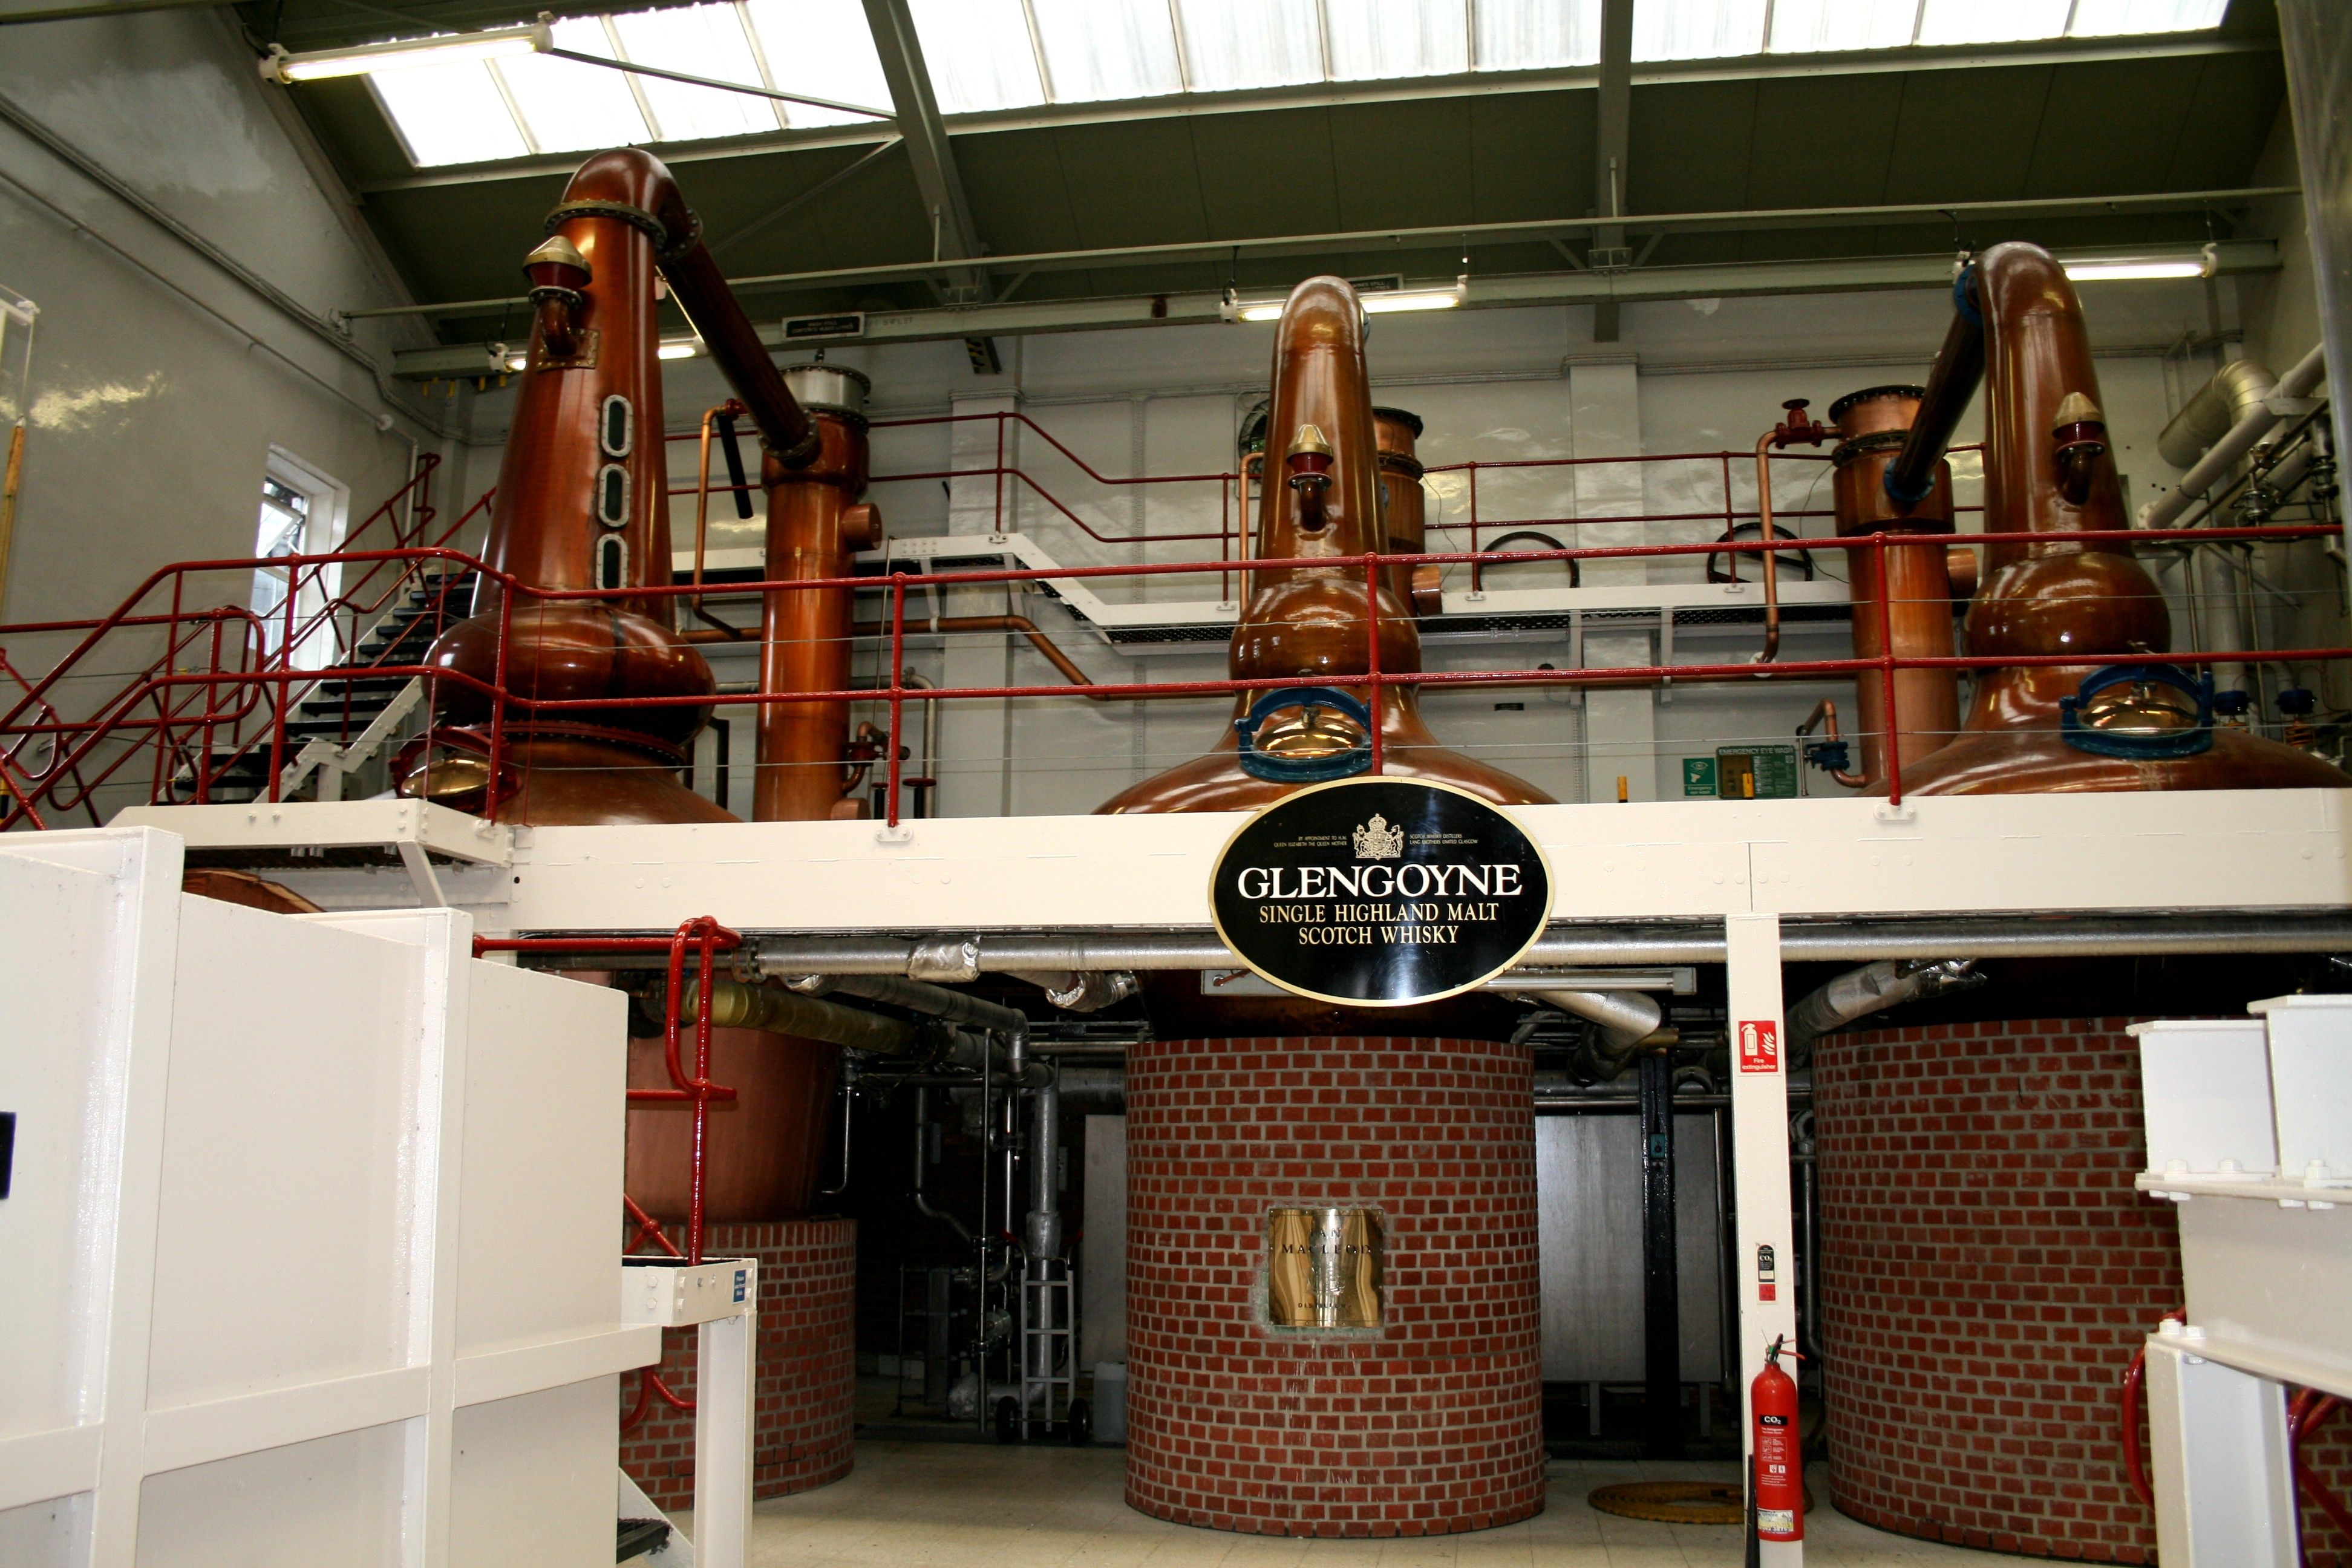 Our Beautiful Copper Stills! Where we distill slower than any other distiller to prolong flavour & create sweet, concentrated aromas & flavours that define Glengoyne.